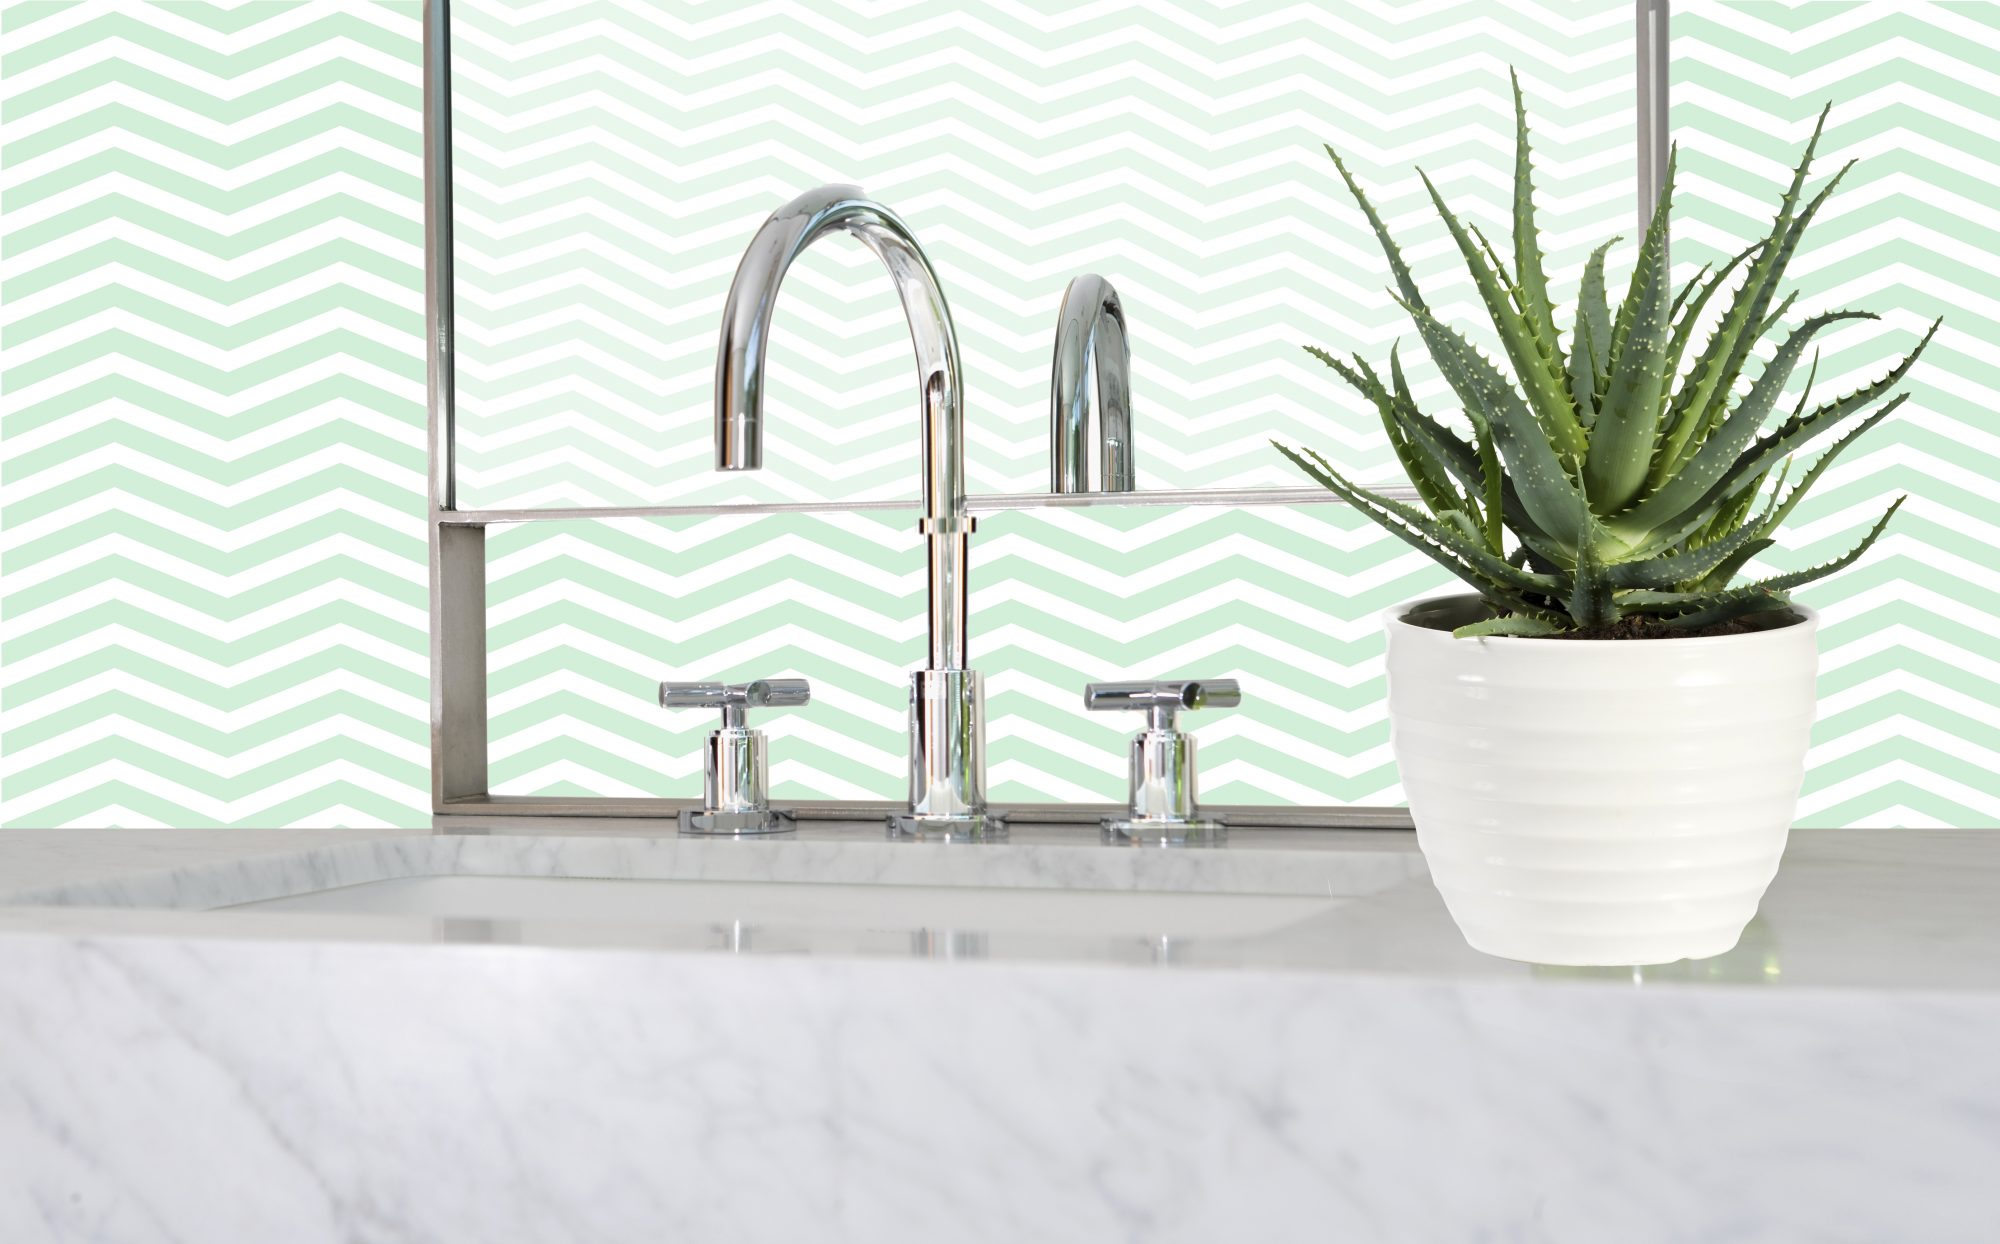 Best Plants for the Bathroom, aloe plant in bathroom